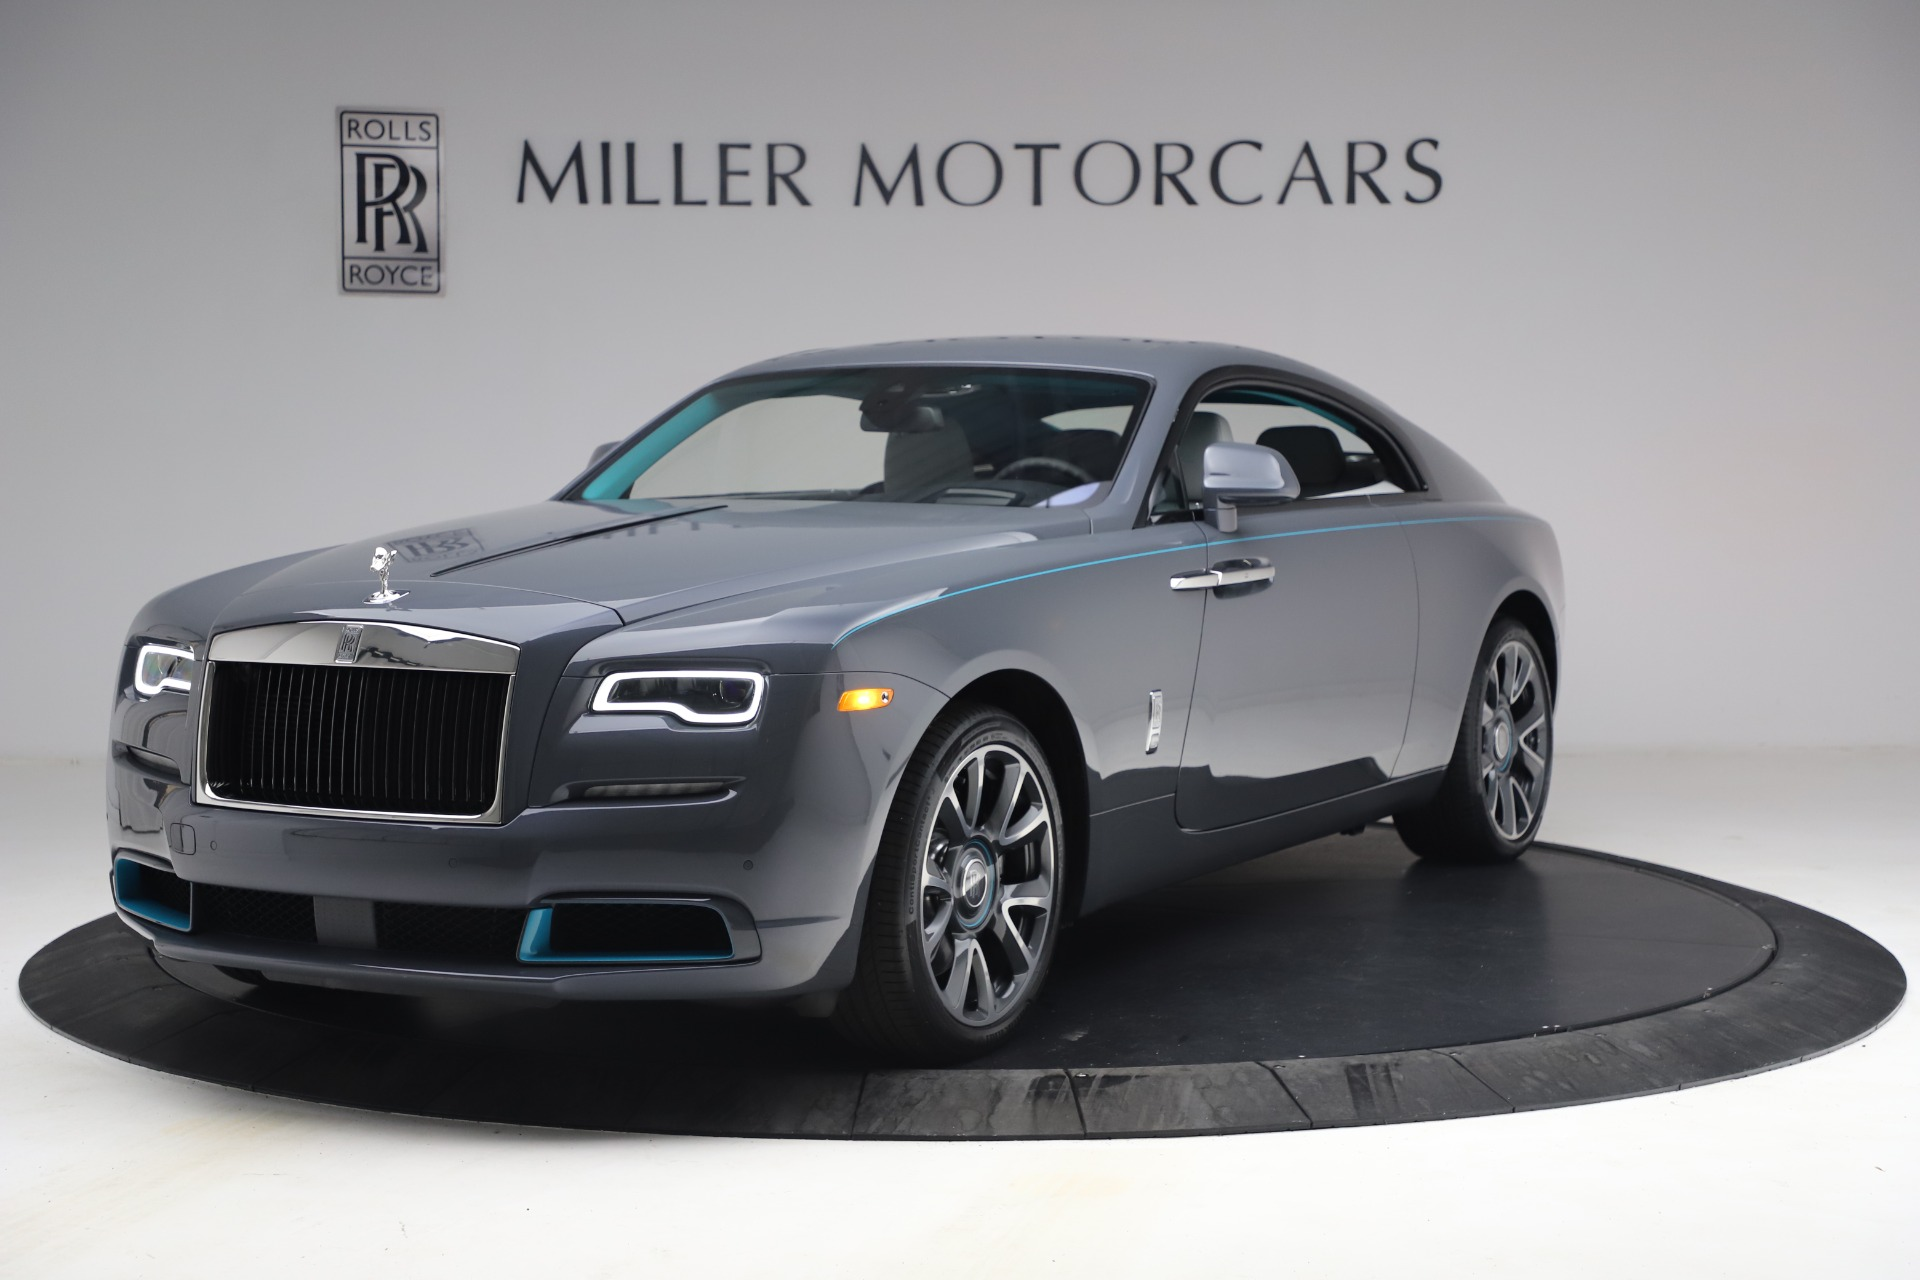 Used 2021 Rolls-Royce Wraith for sale $444,275 at Bentley Greenwich in Greenwich CT 06830 1